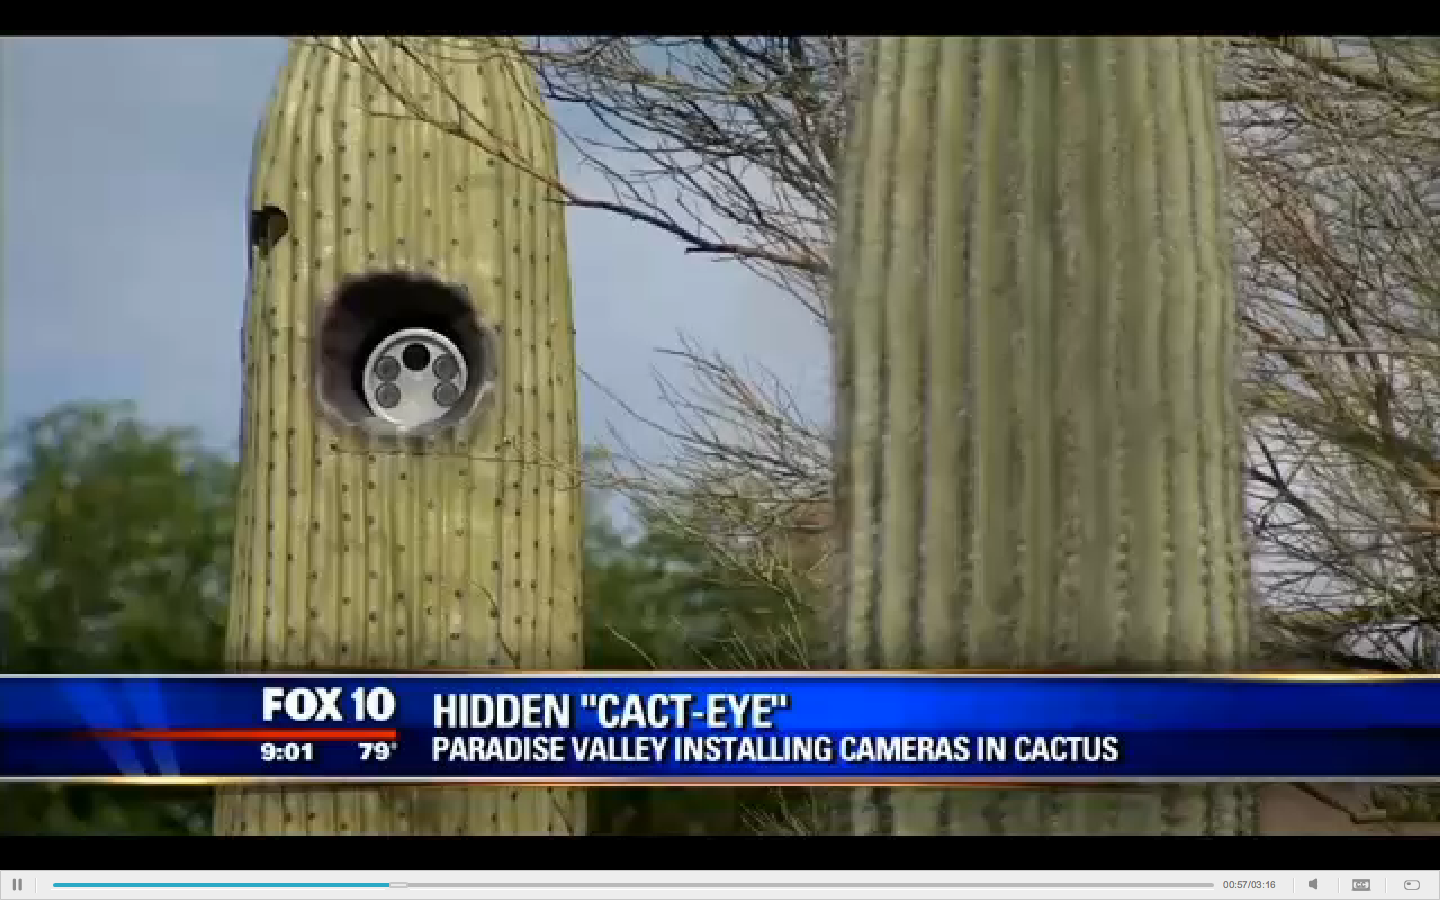 An Arizona town is hiding license plate readers in fake cactuses